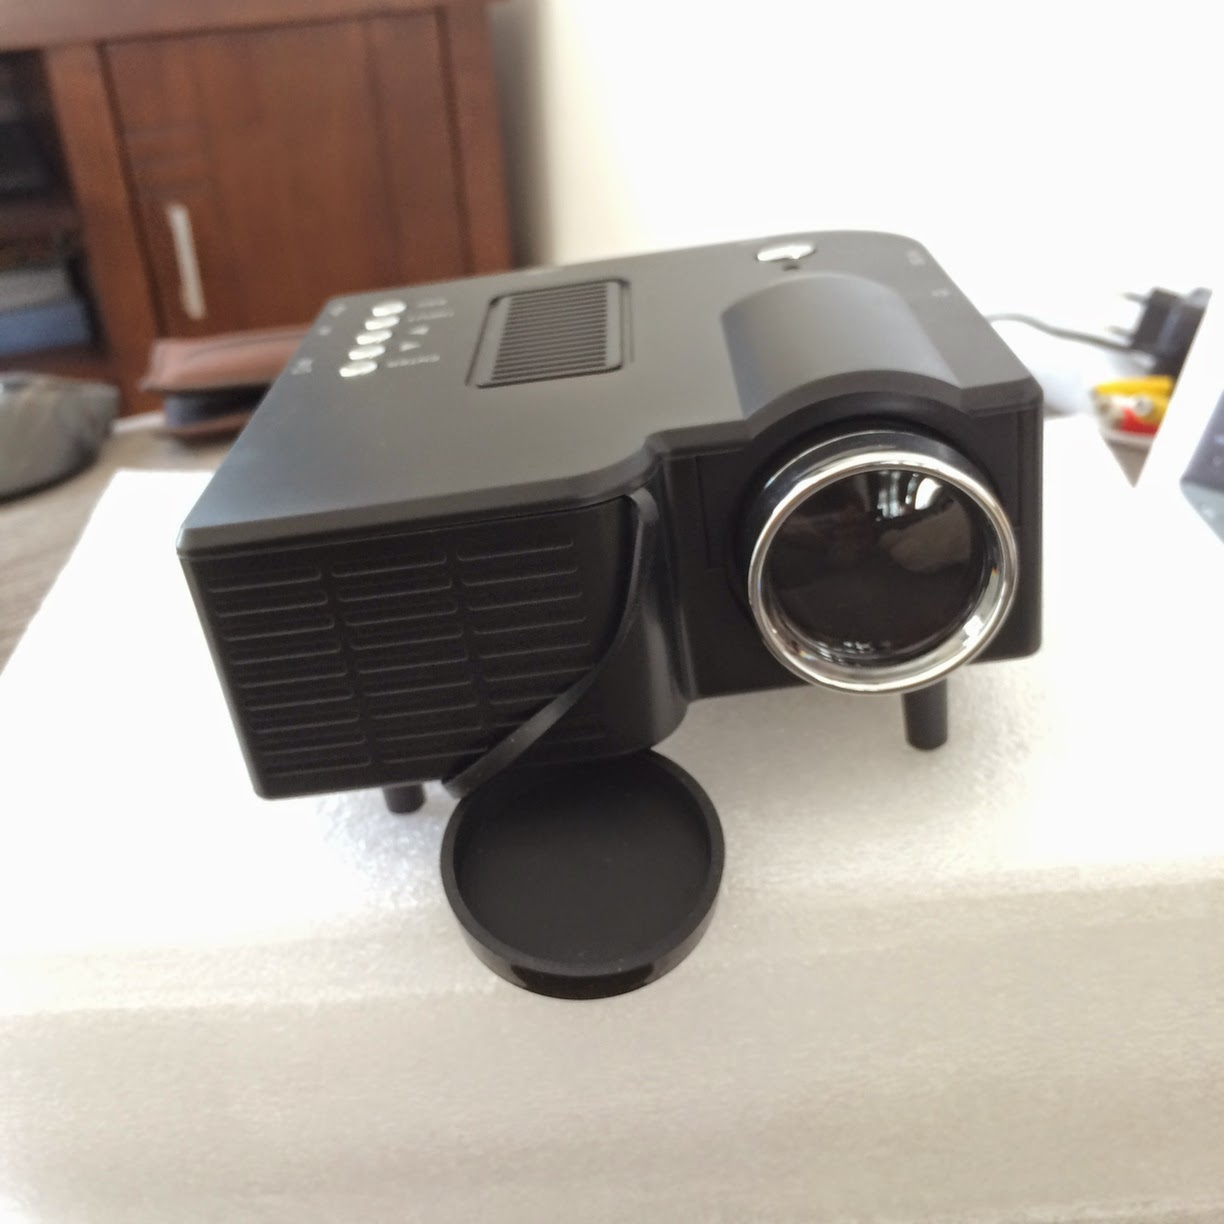 http://lcdproyektormini.blogspot.com/2014/08/portable-mini-multimedia-led-projector.html